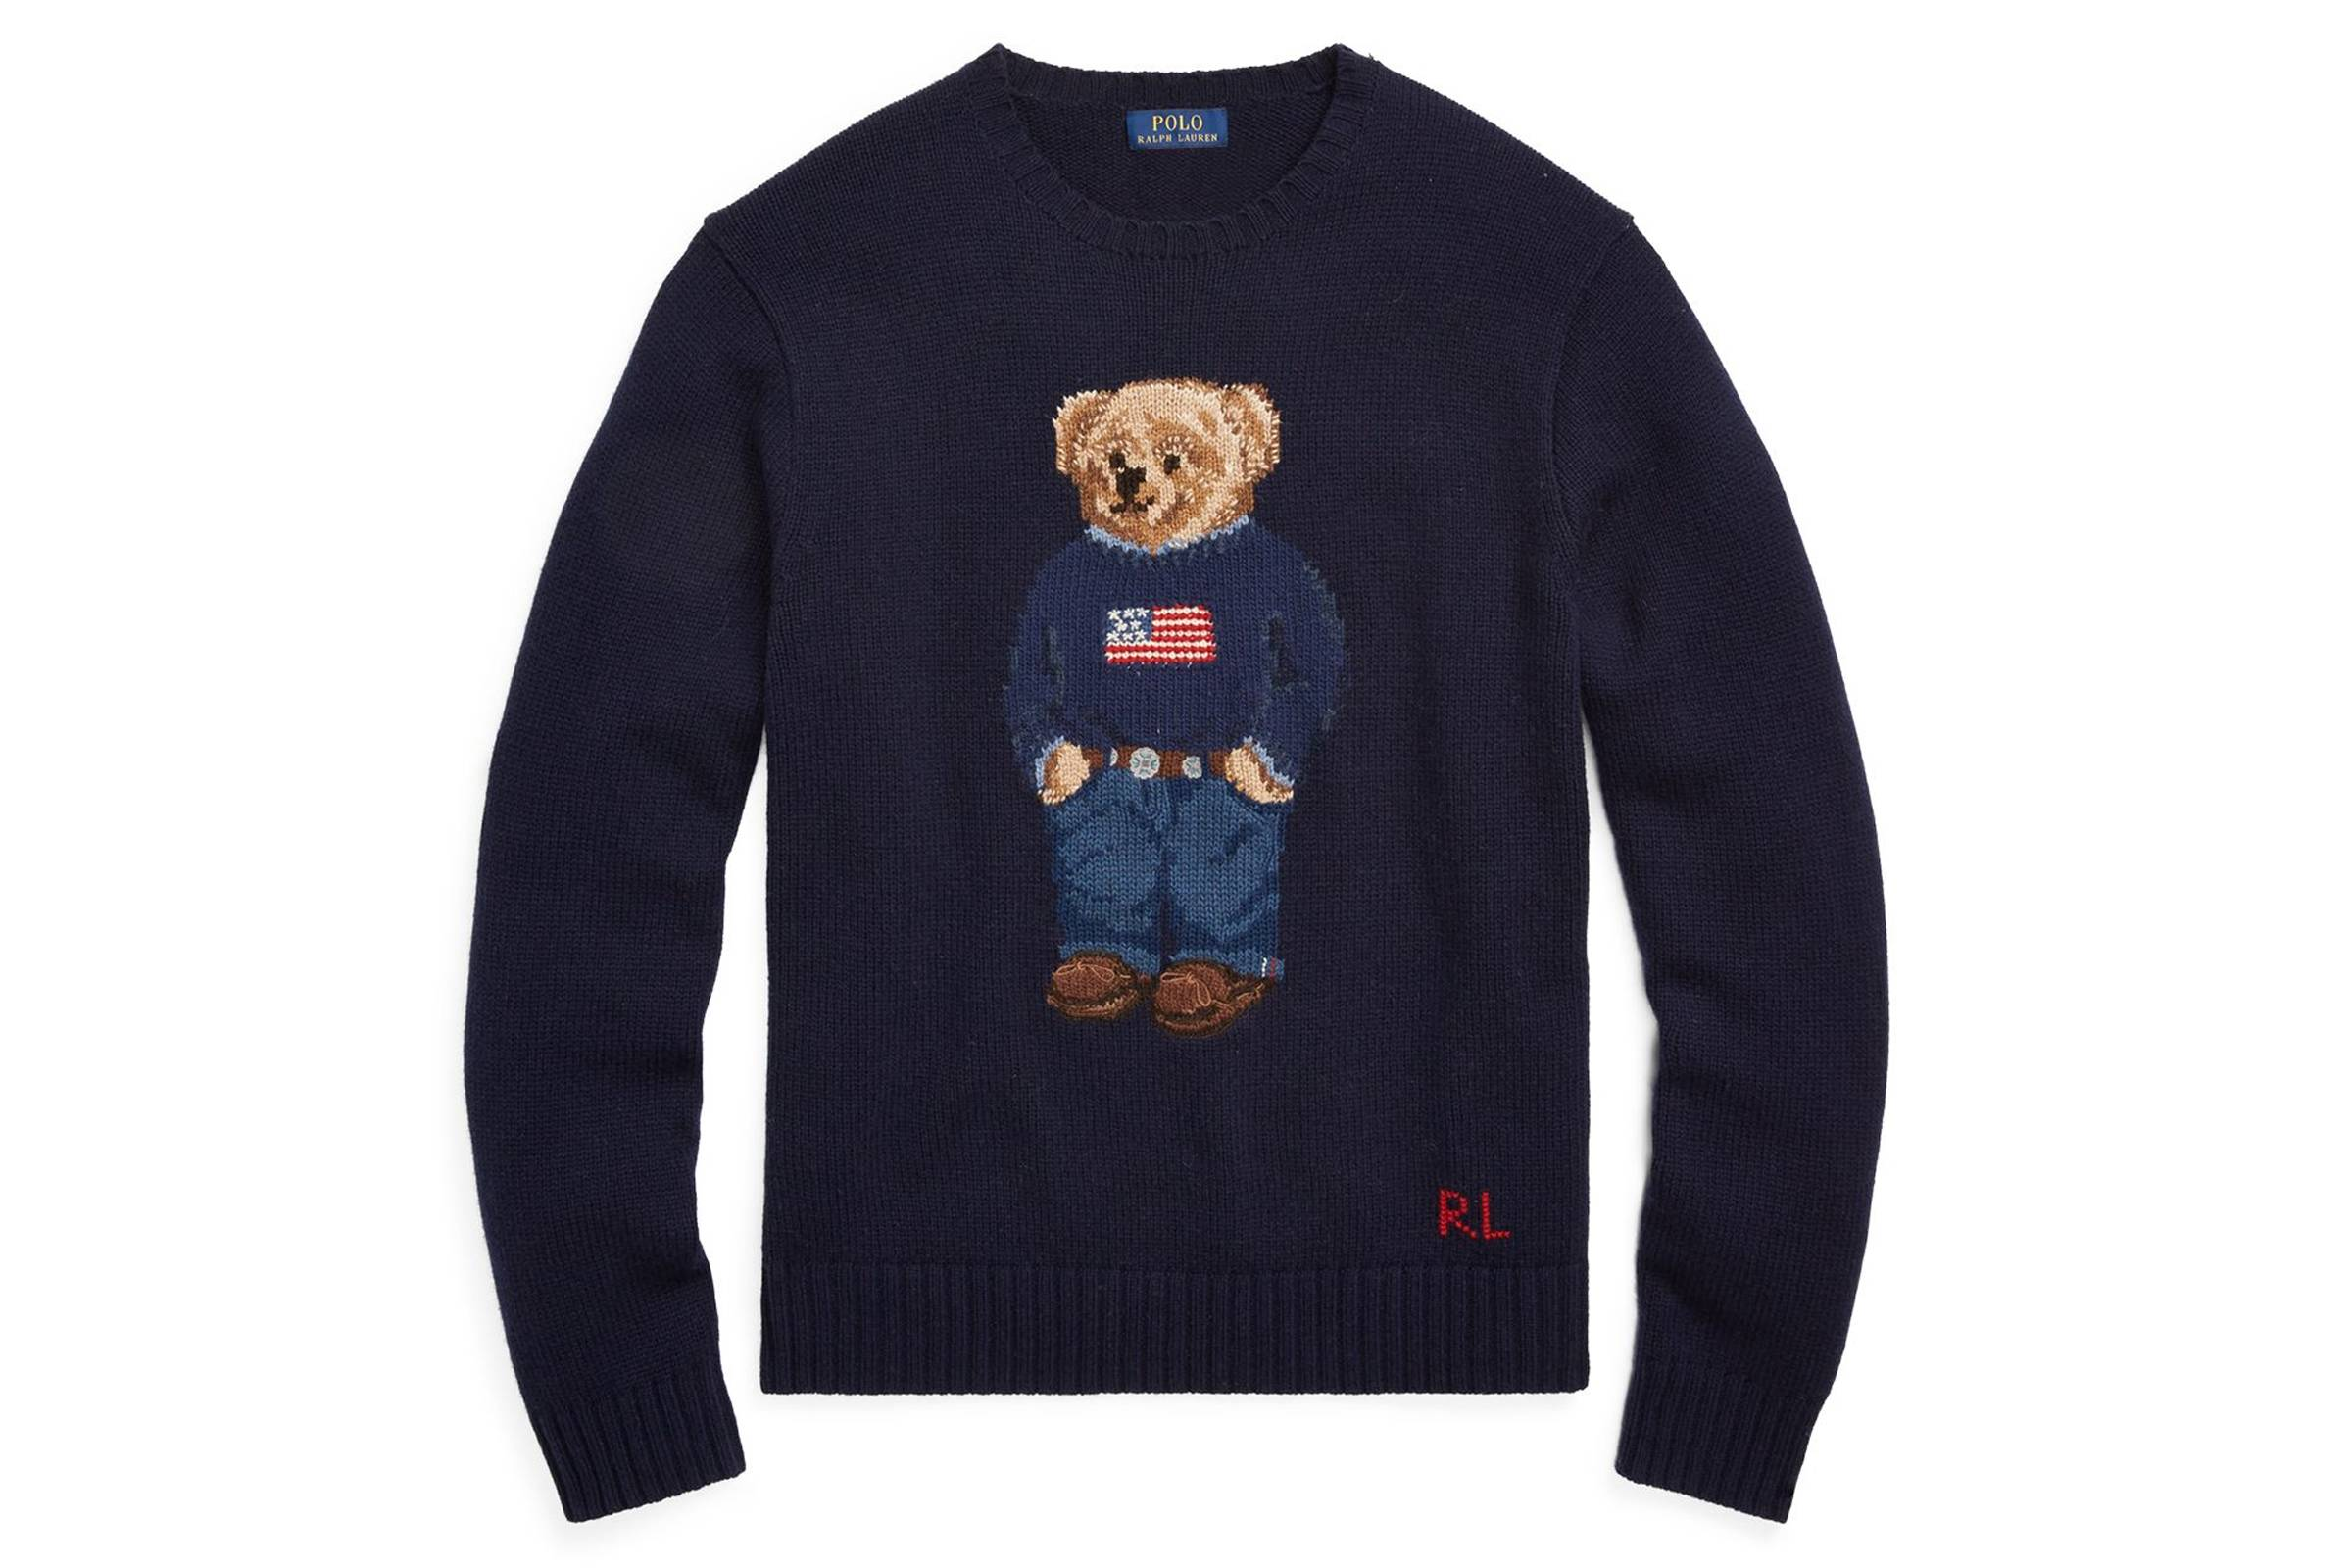 ba027f5052b0 Inspired by Jerry Lauren s Steiff teddy bear collection (which according to  Ralph Lauren numbers between 30 and ...